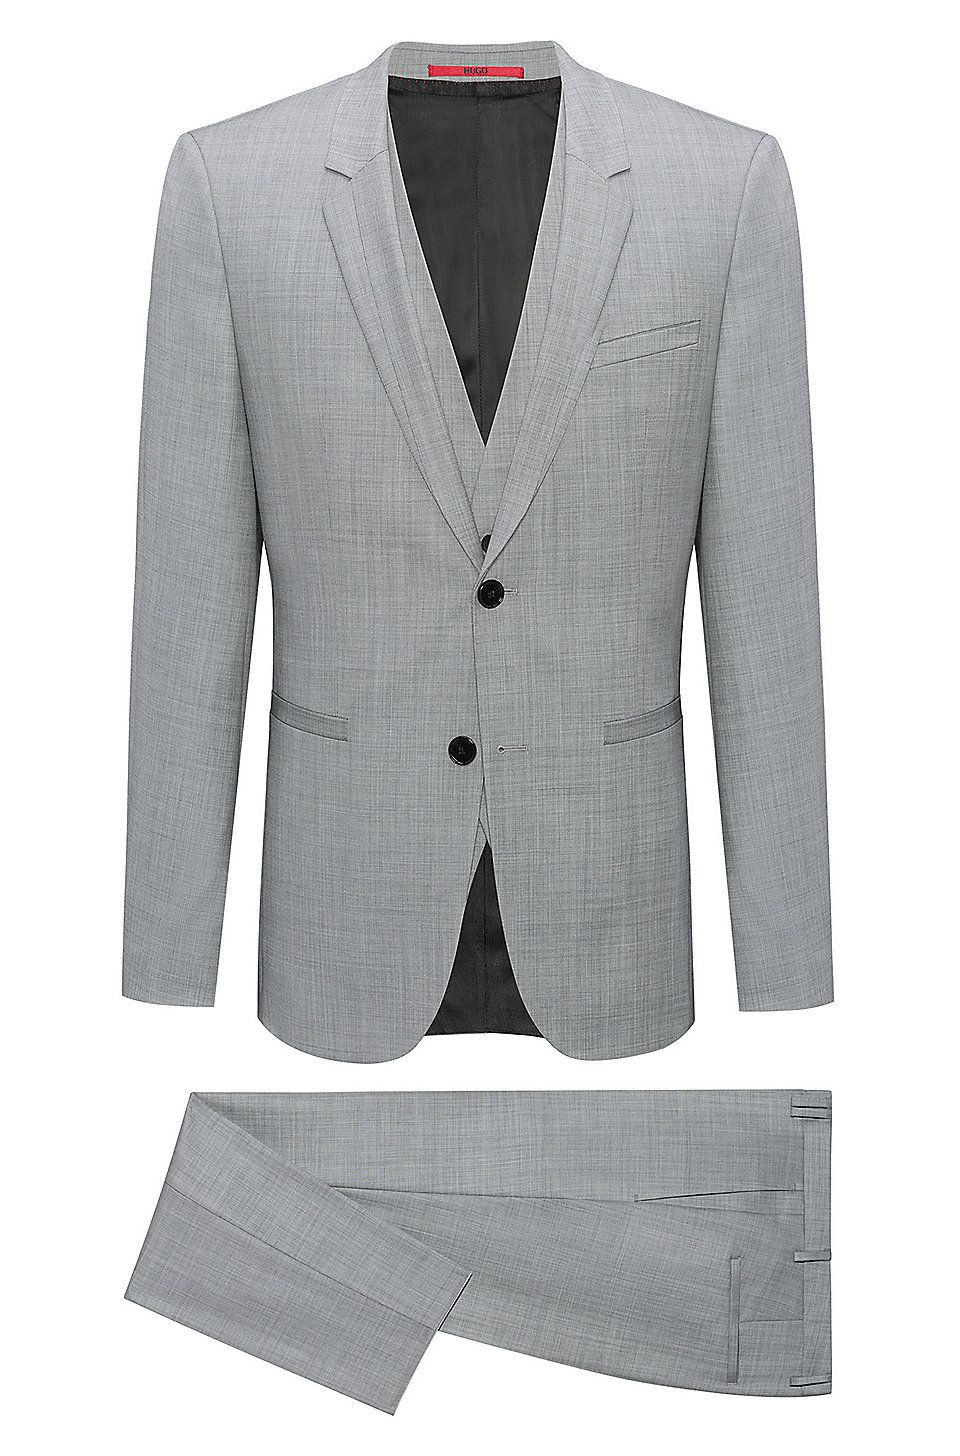 731fac51 Hugo Boss Extra-slim-fit three-piece suit in check wool - Open Grey  Business Suits from HUGO for Men in the official HUGO BOSS Online Store  free shipping